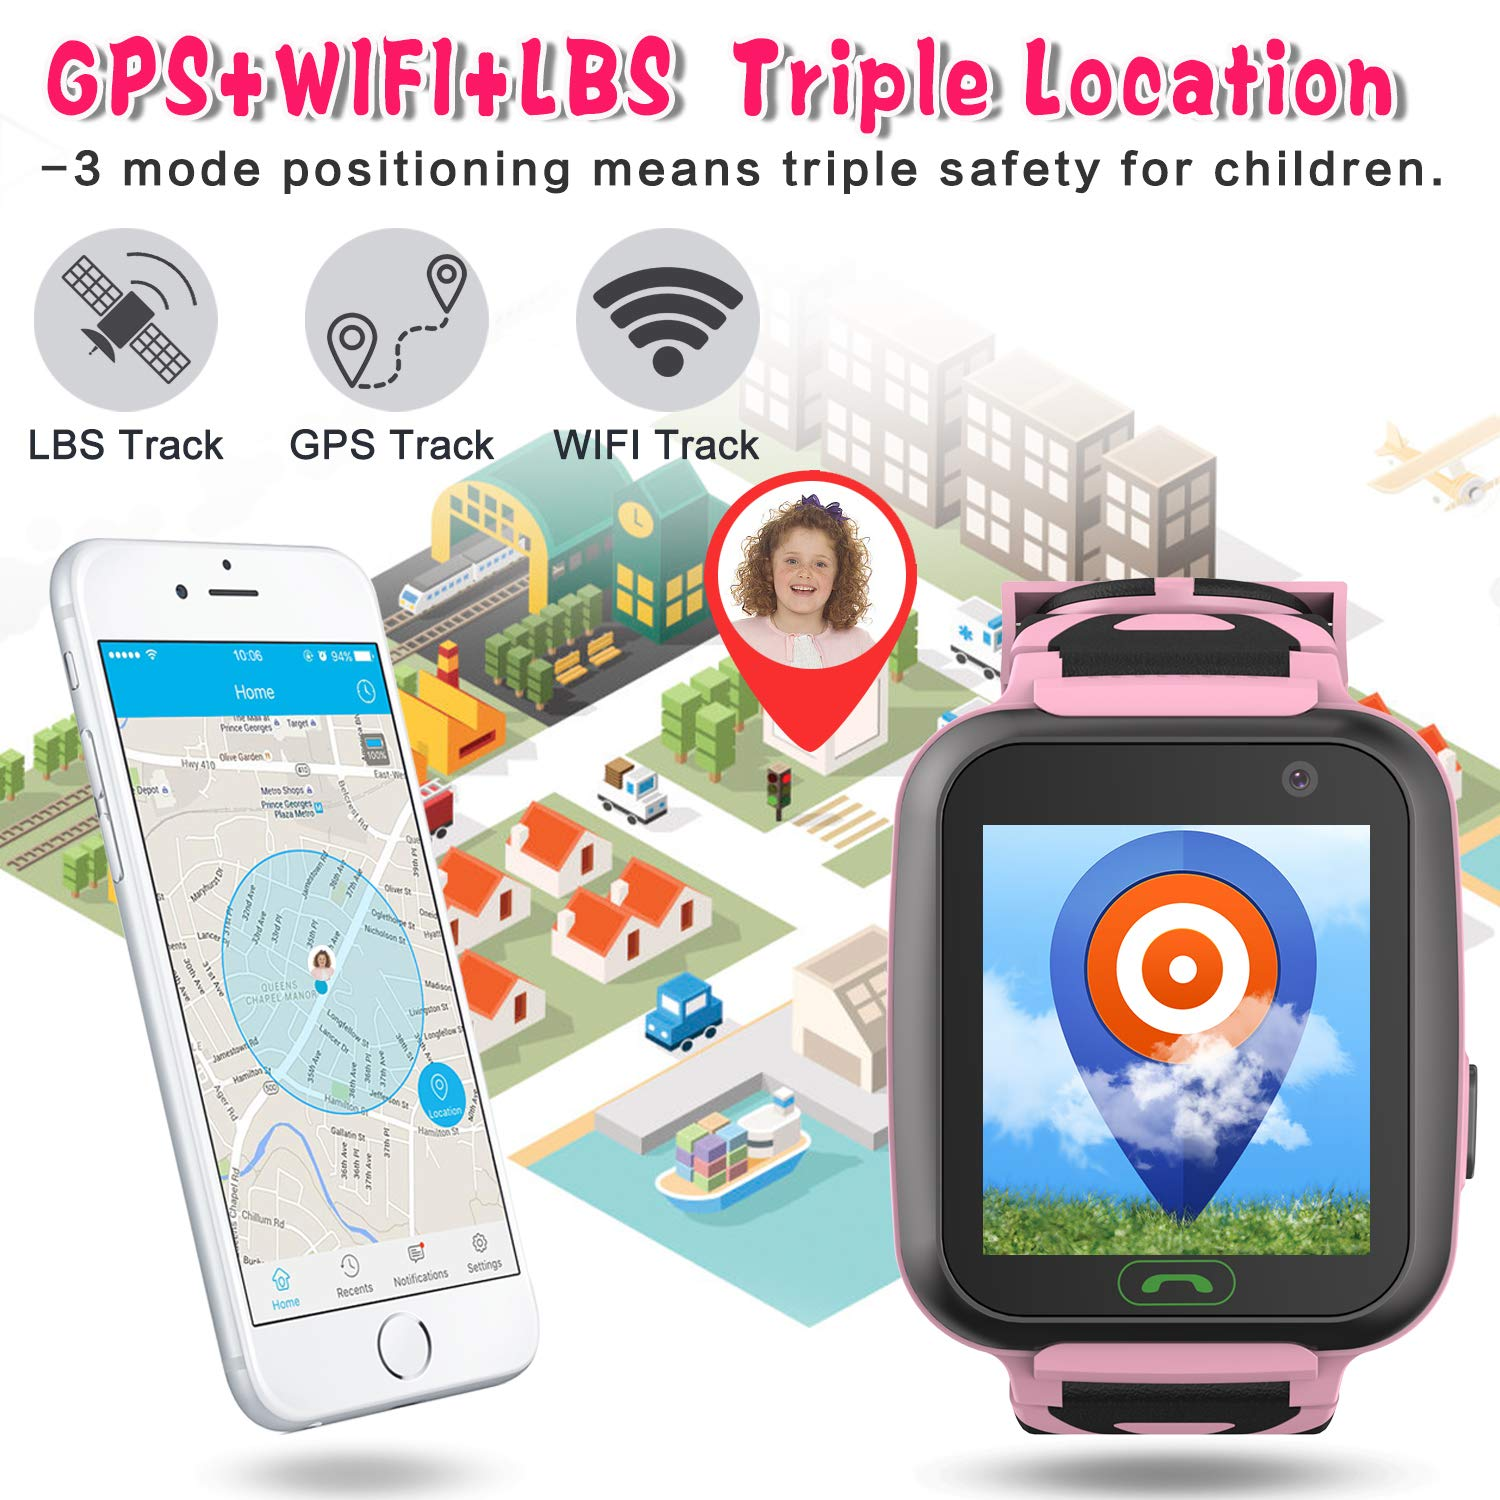 [SIM Card Include] Kids Smart Watch-Upgrade Real GPS Tracker Waterproof WiFi Smart Watch Phone for Boys Girls with Fitness Tracker Pedometer Camera Alarm Clock Kids Back to School Gifts (Pink) by GBD (Image #2)